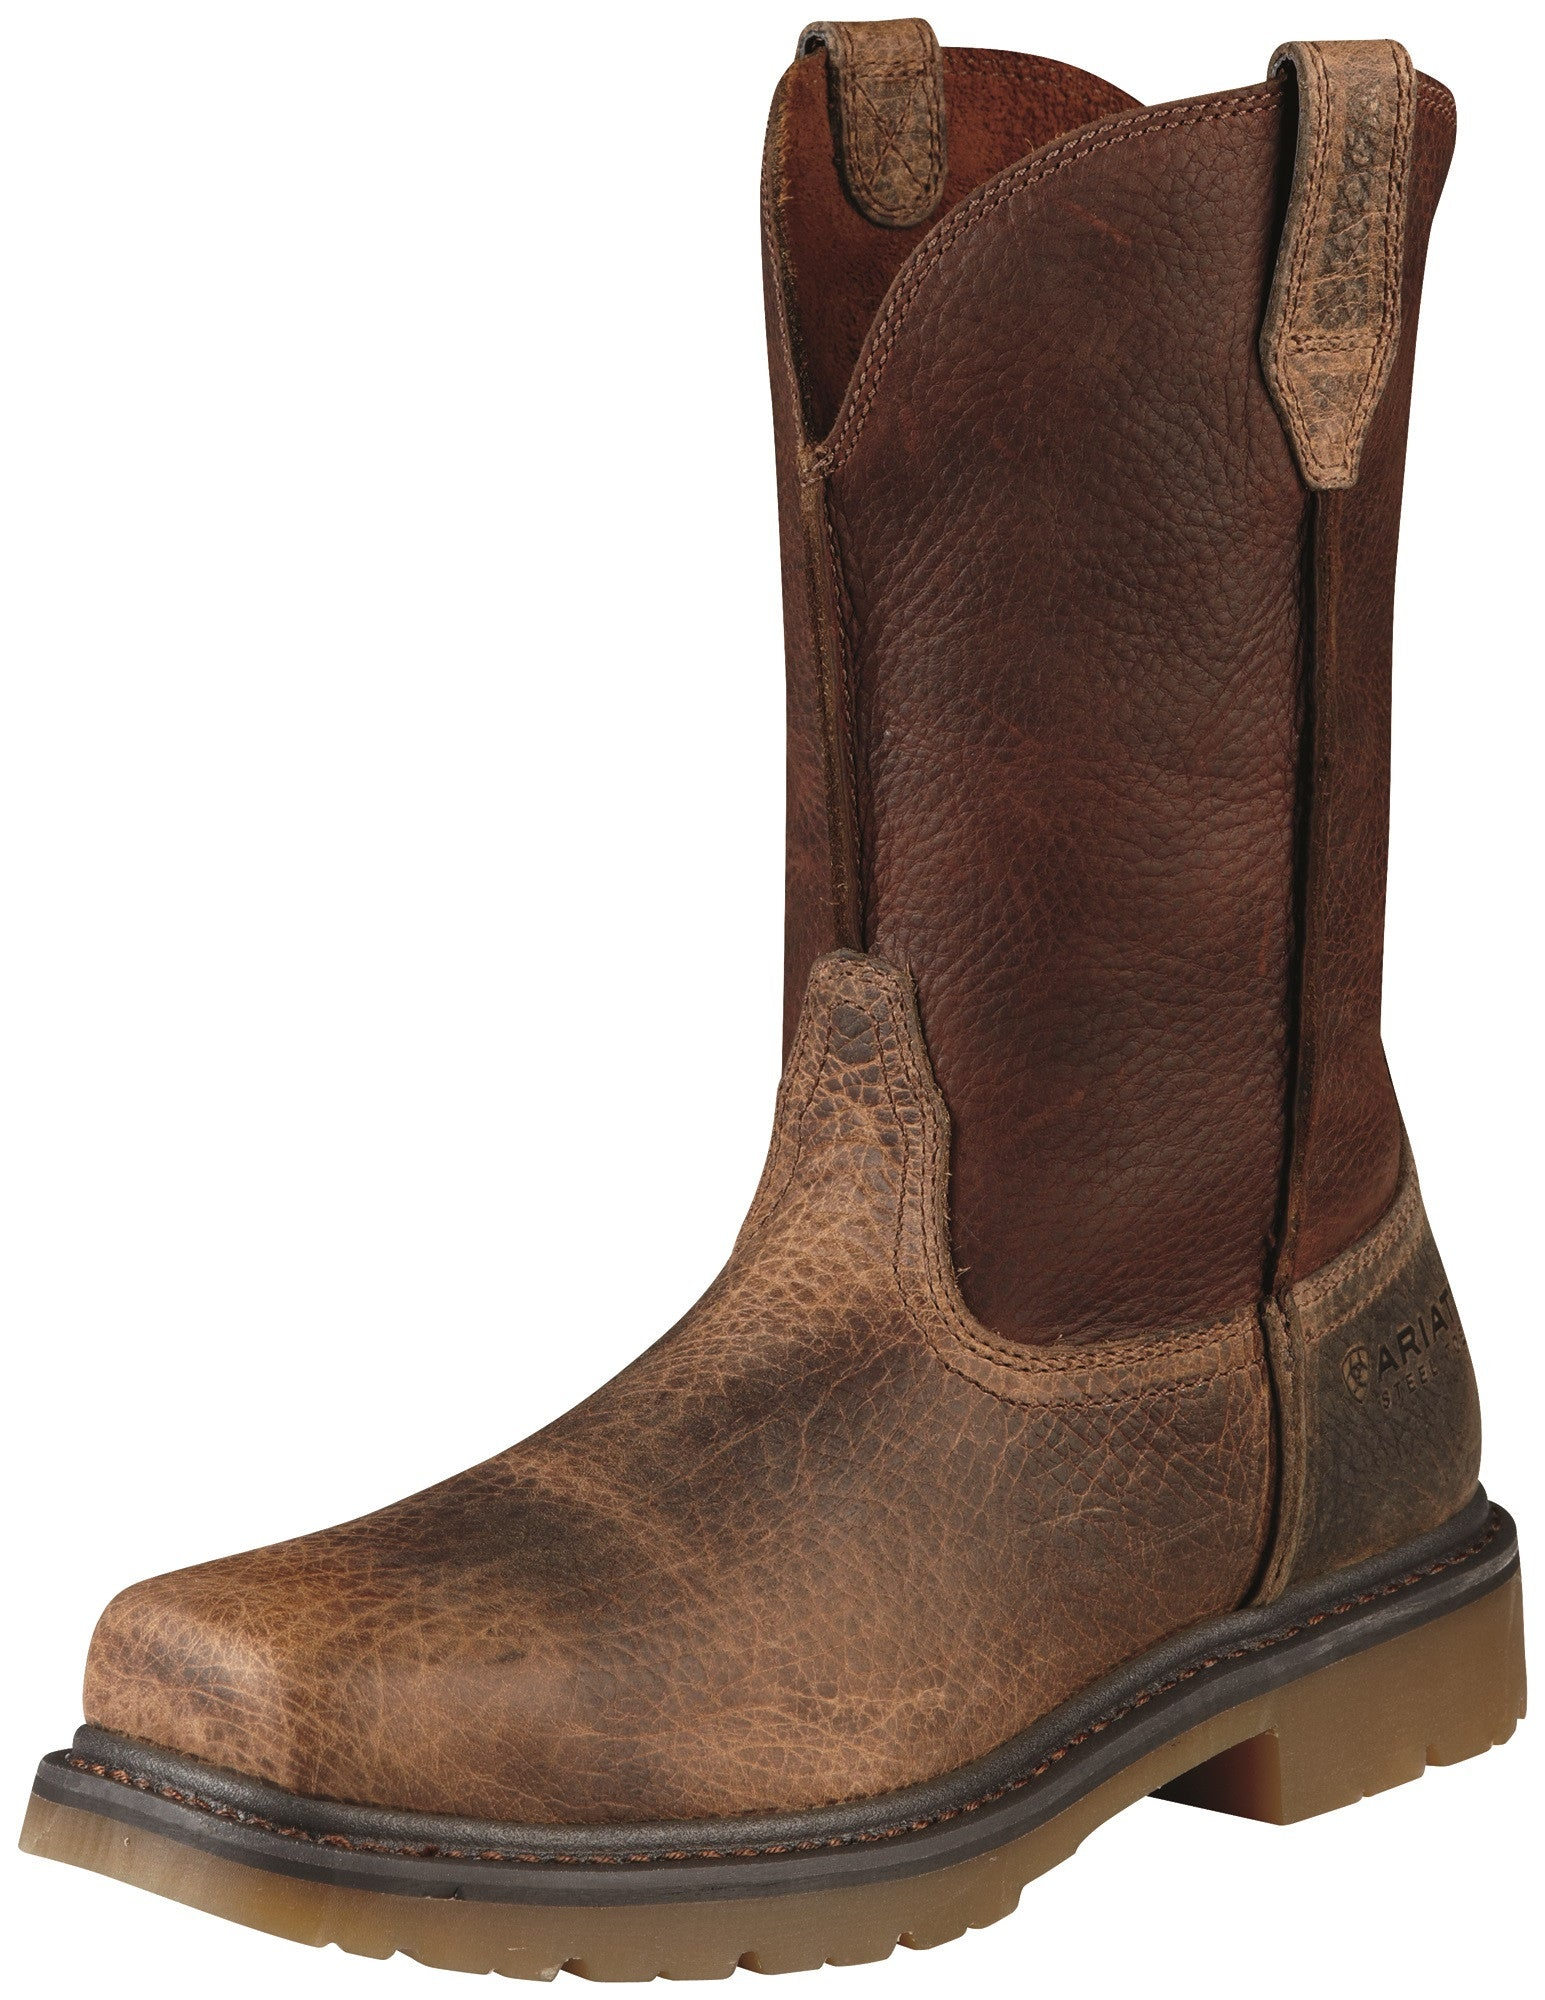 41a6f9dc68f Men's Ariat Rambler Work Steel Toe Work Boot #10008642